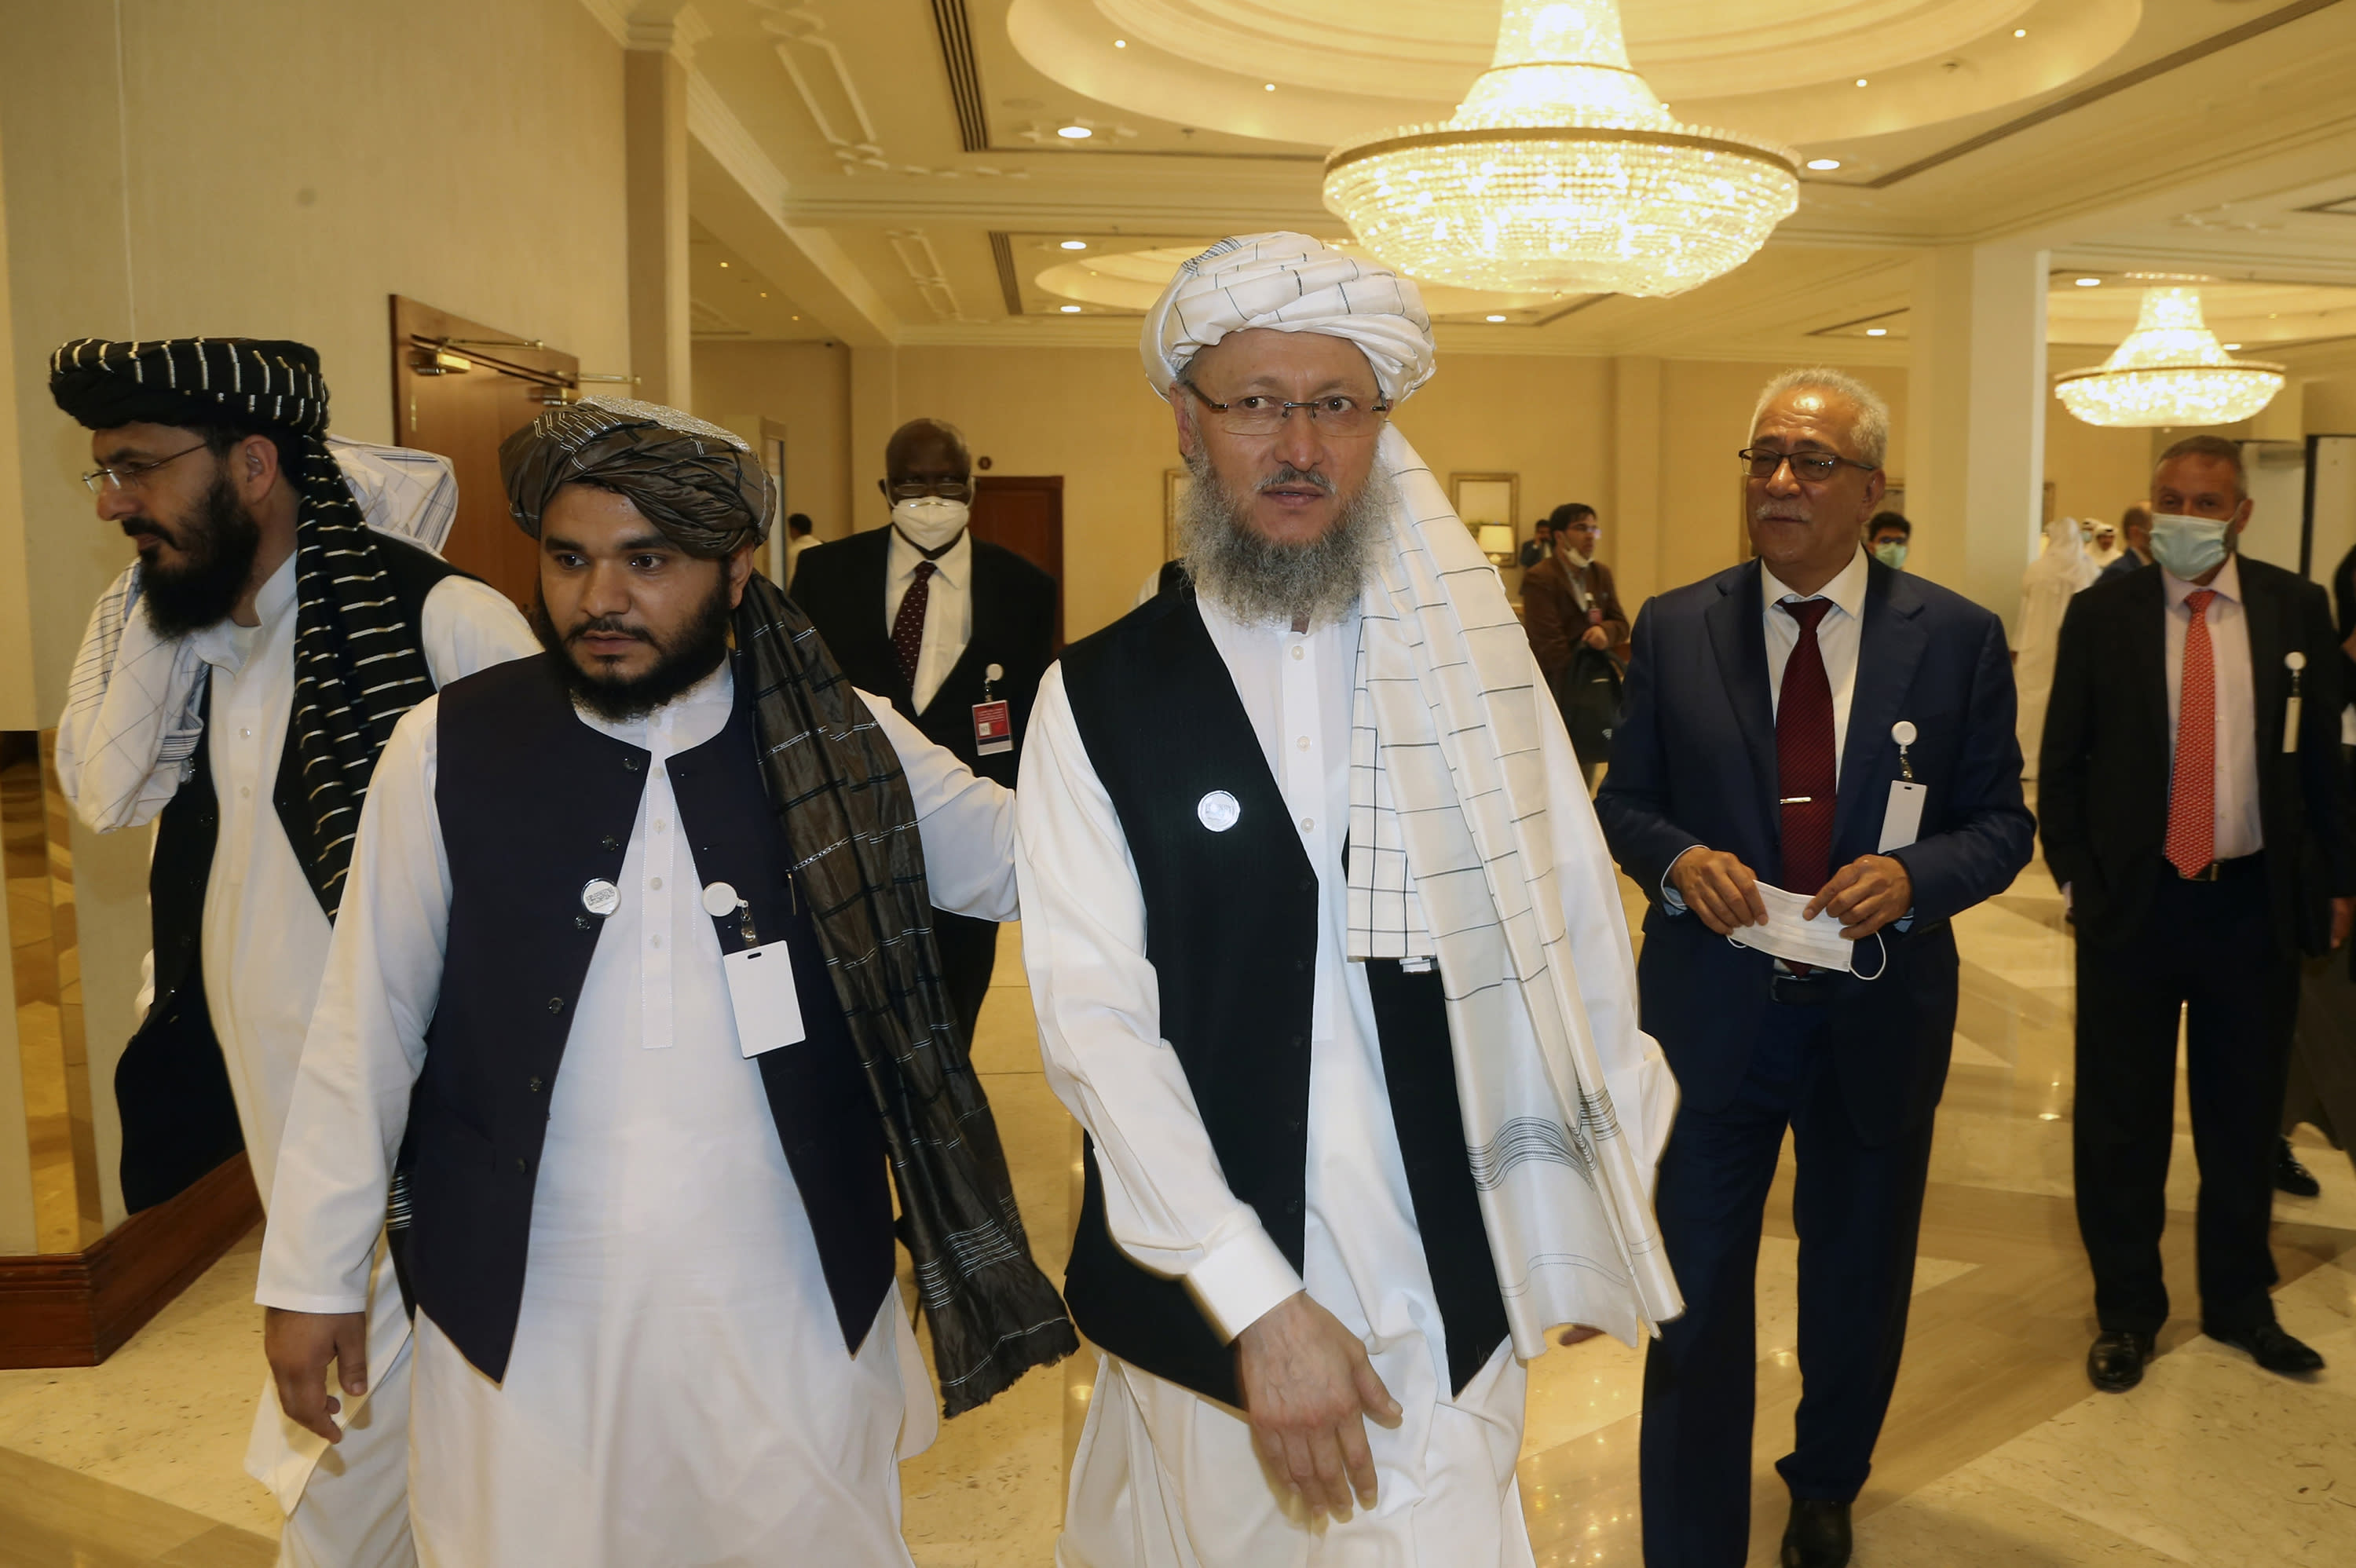 Deputy Head of Political Office of the Taliban Abdul Salam Hanafi, center, heads to attend the opening session of the peace talks between the Afghan government and the Taliban in Doha, Qatar, Saturday, Sept. 12, 2020. (AP Photo/Hussein Sayed)